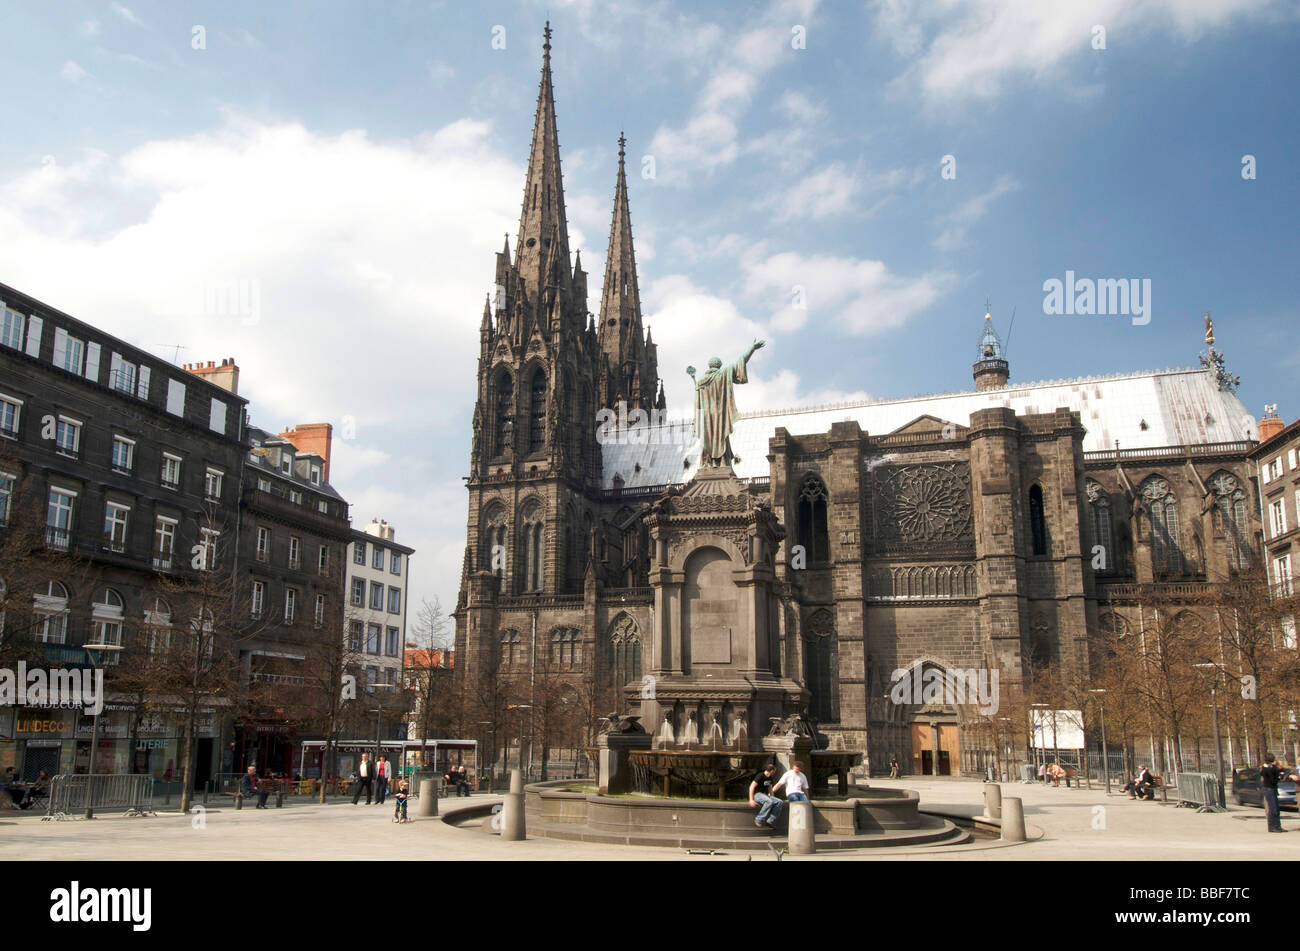 cathedral of clermont ferrand puy de dome auvergne france stock photo royalty free image. Black Bedroom Furniture Sets. Home Design Ideas